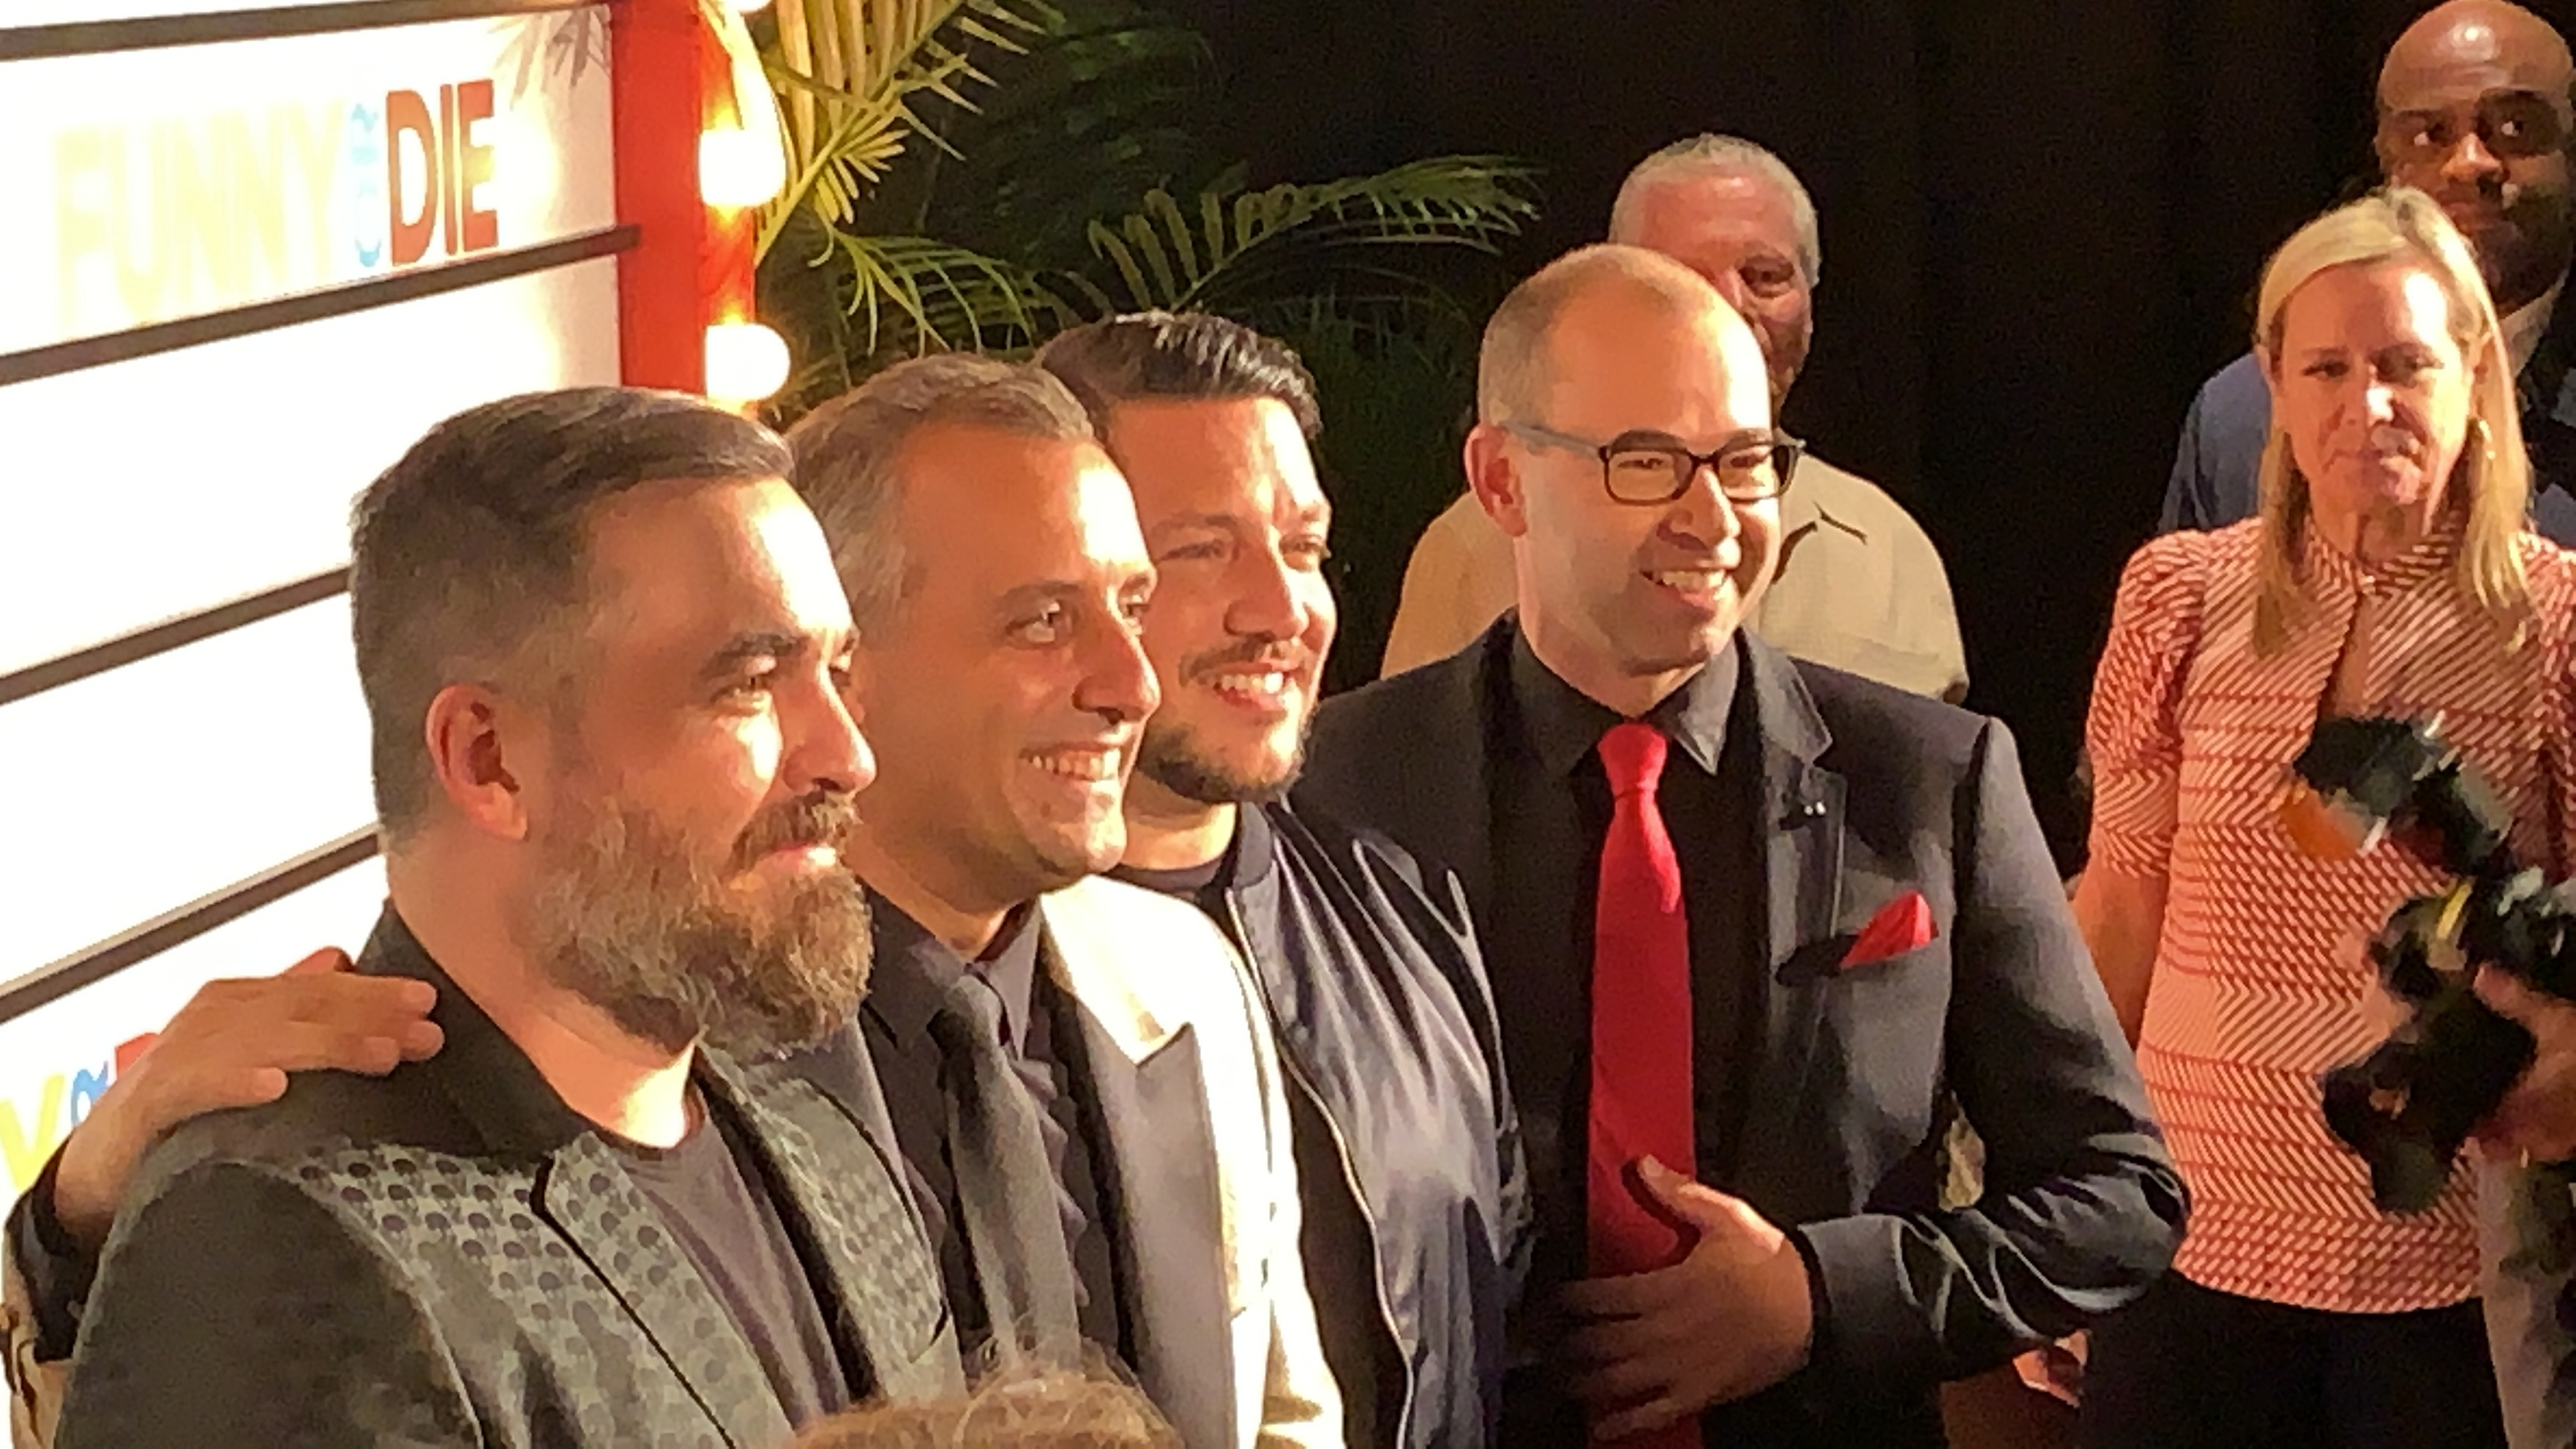 'Impractical Jokers: The Movie': Ticket info, how to see the film before Friday